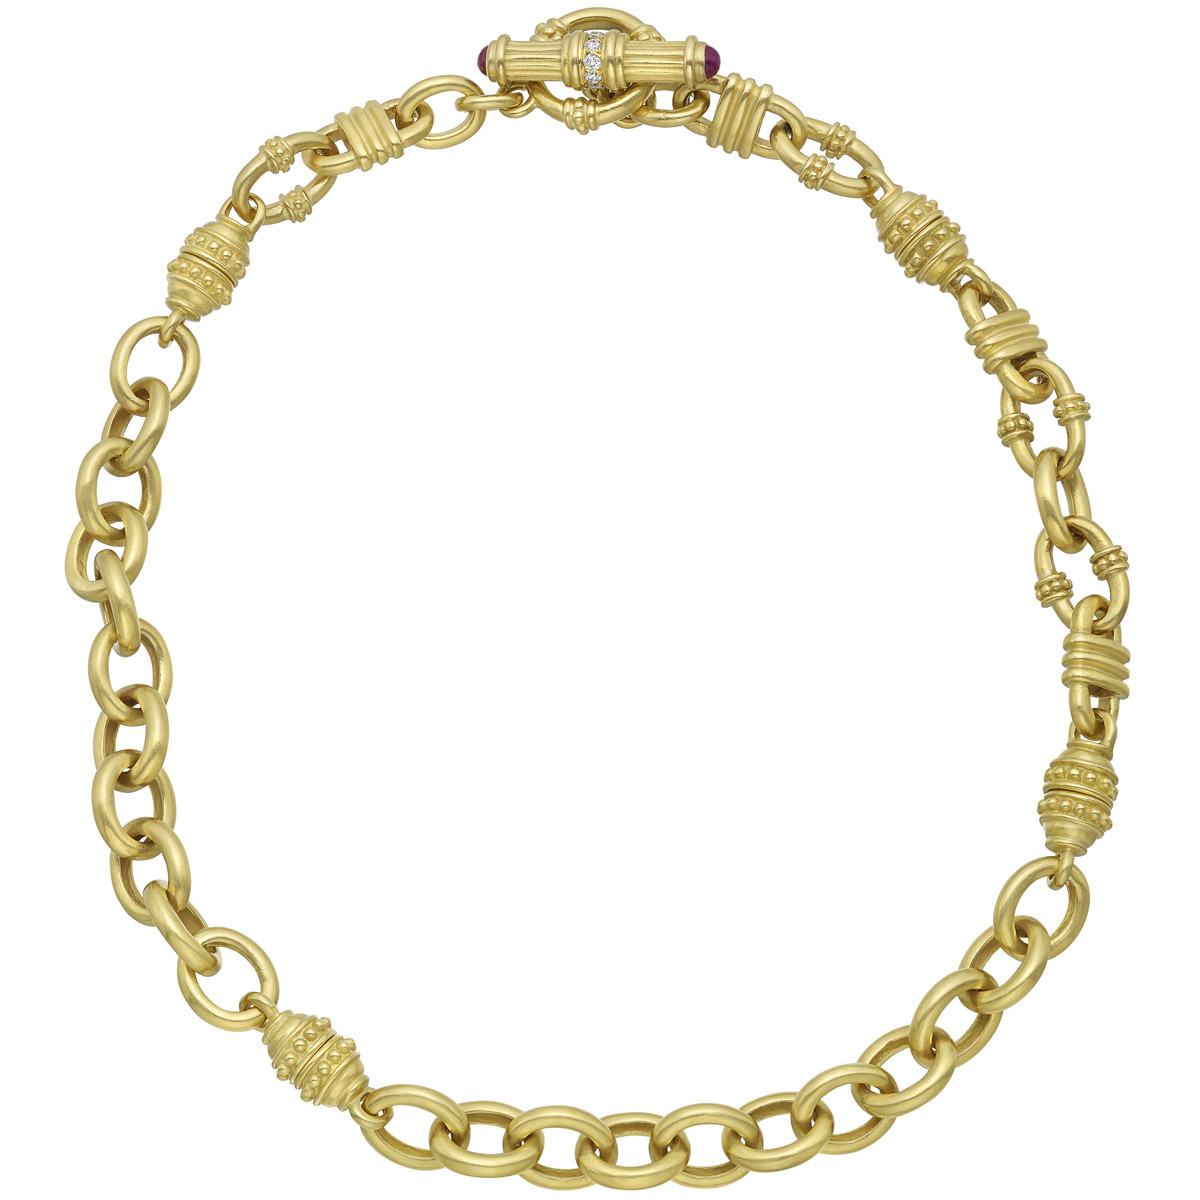 22k Yellow Gold Adjustable Link Necklace